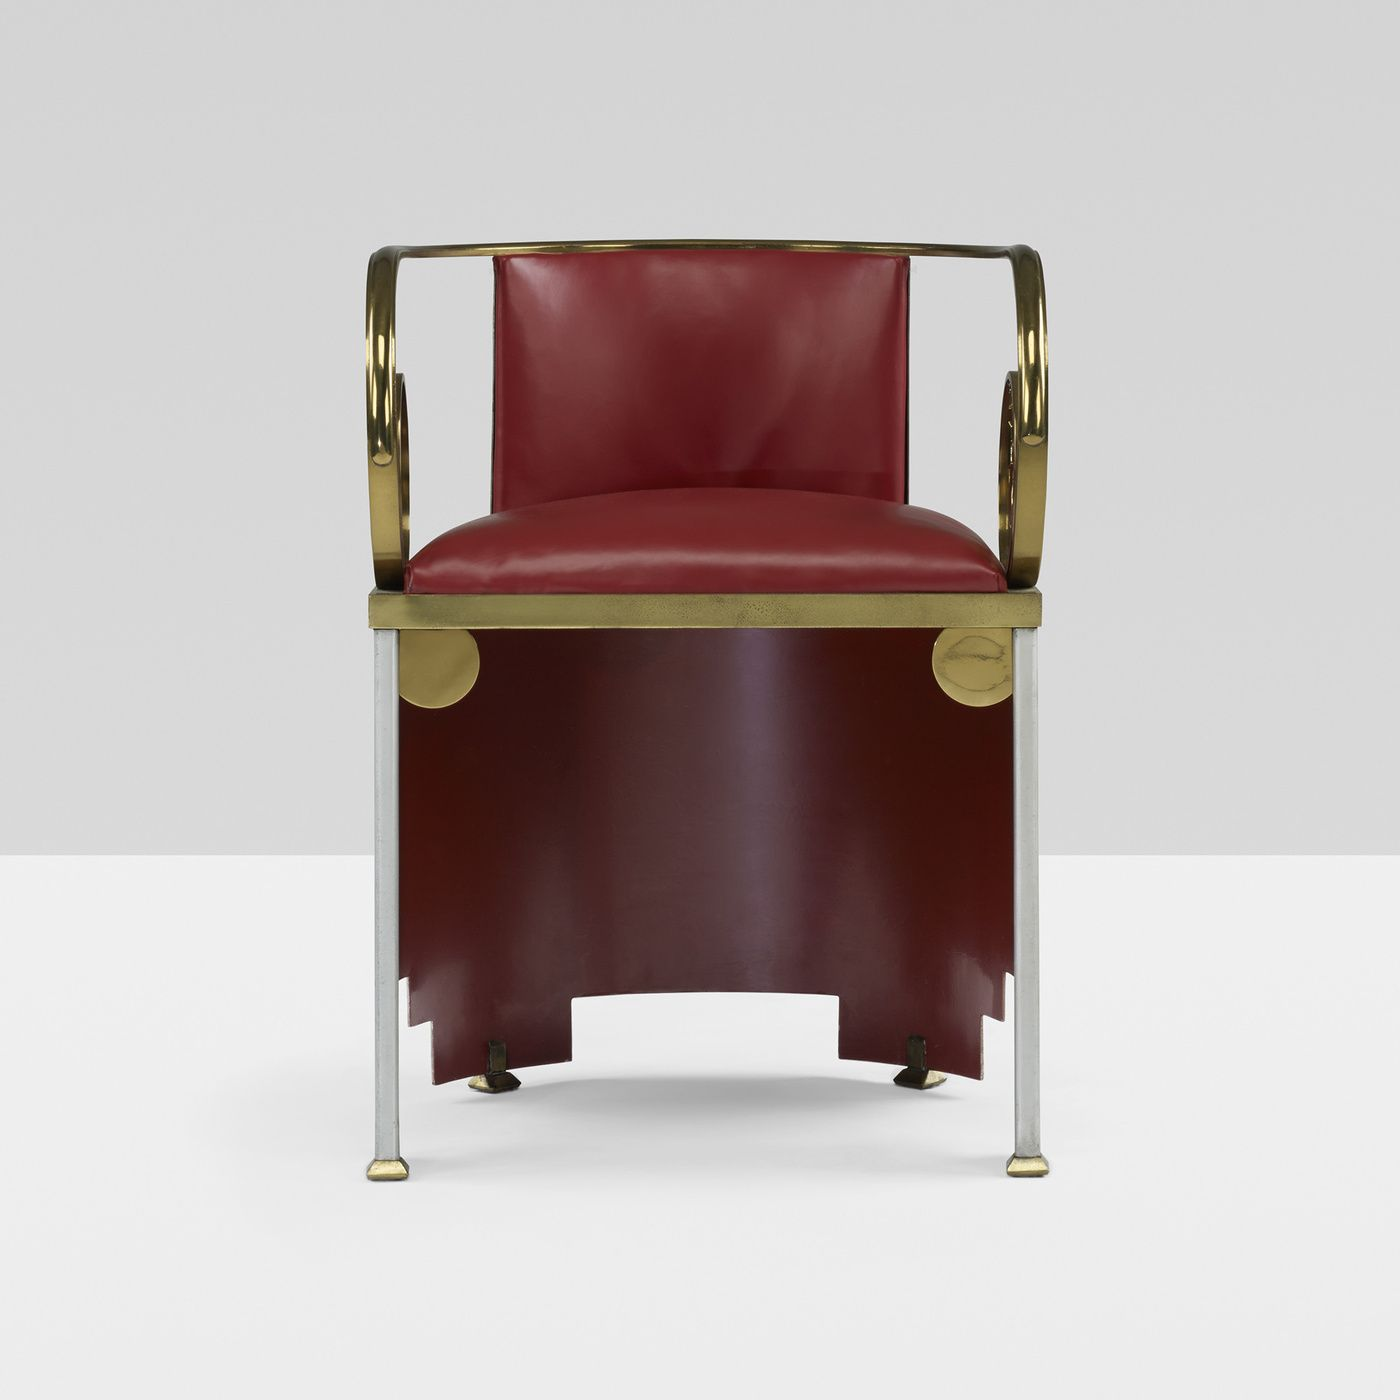 137: Walter Von Nessen / Important and rare chair from the International Exposition of Art and Industry < Important Design, 6 June 2013 < Au...